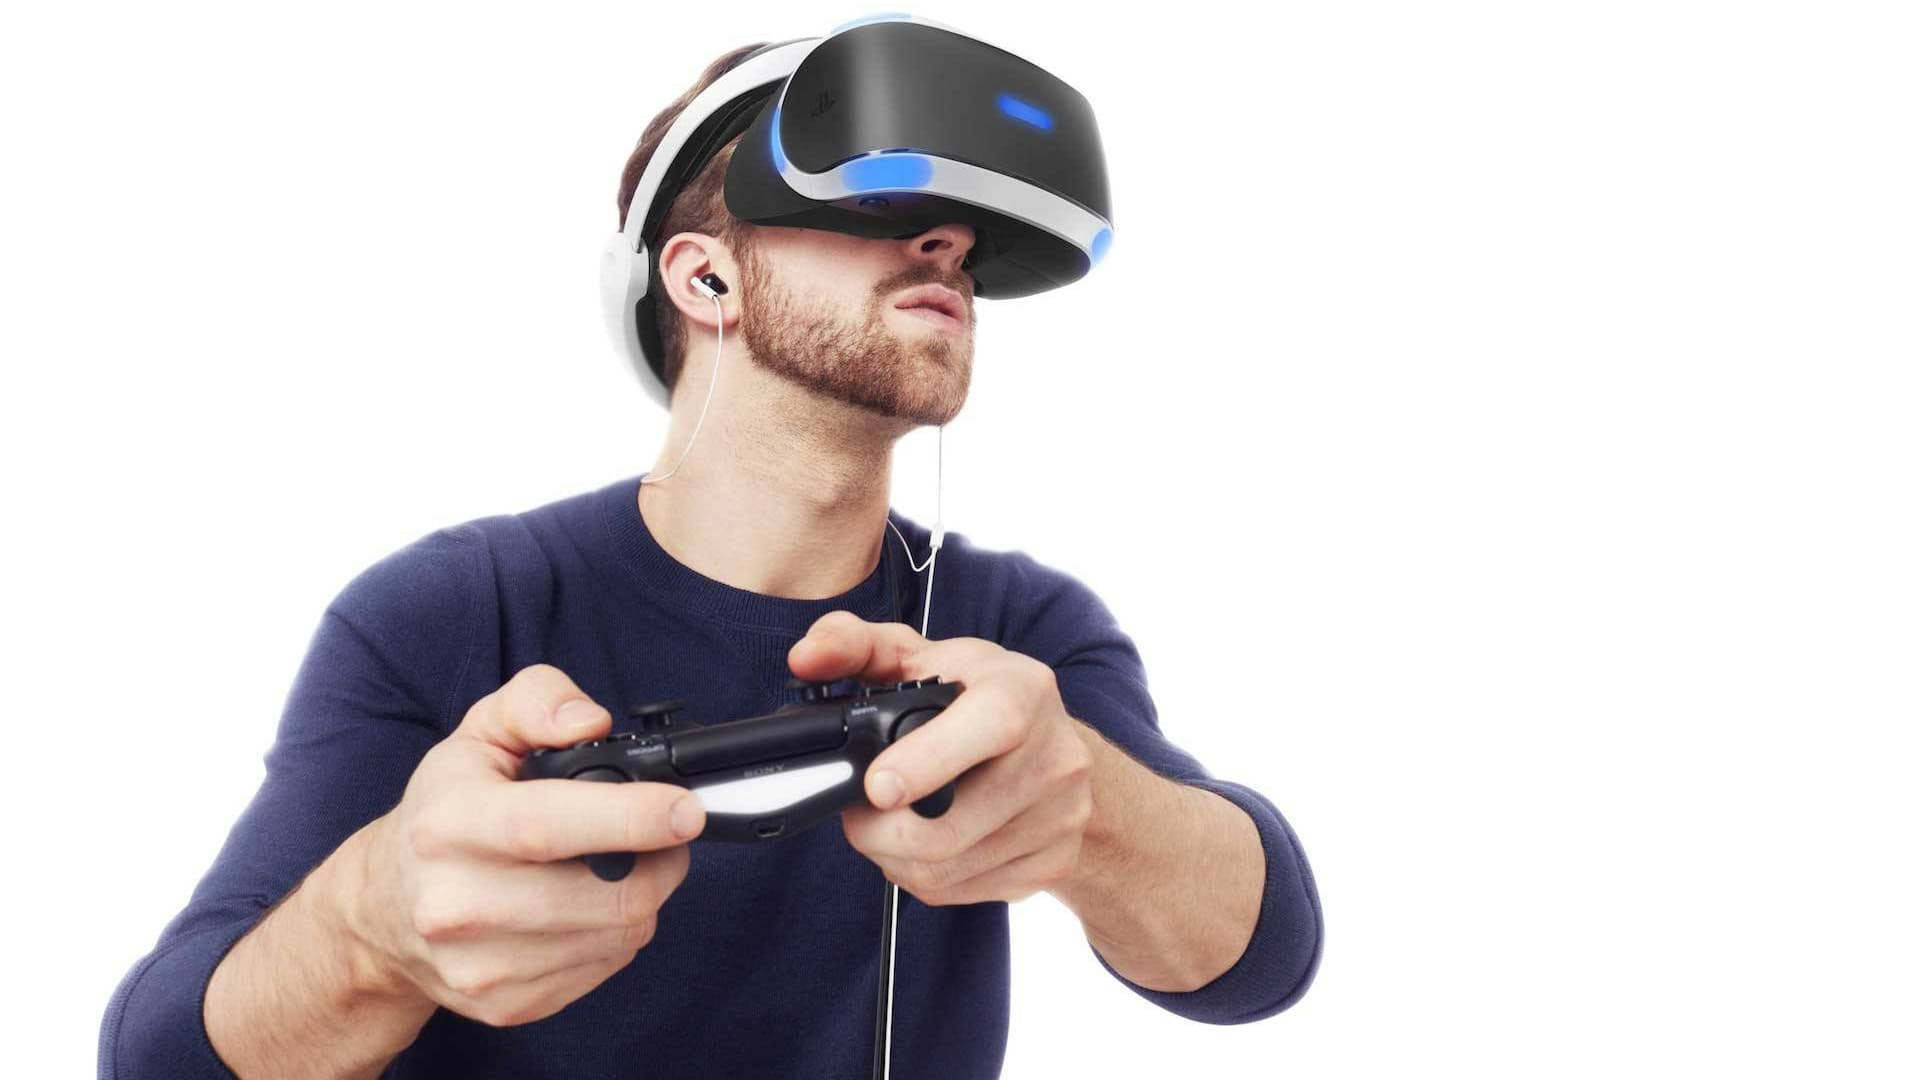 10 Playstation Vr Wallpapers High Quality Download HD Wallpapers Download Free Images Wallpaper [1000image.com]